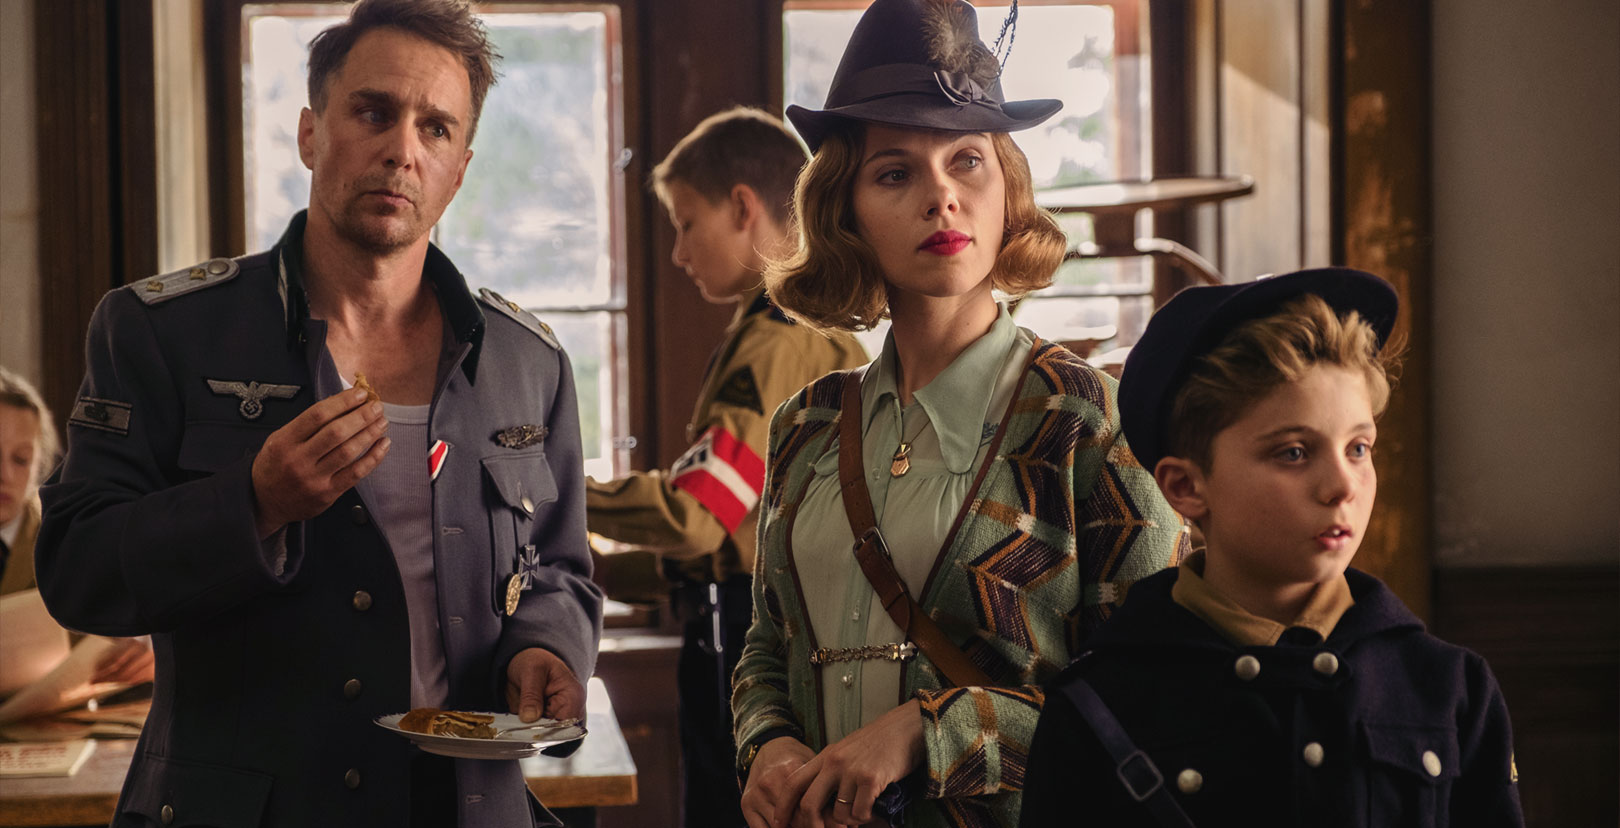 Jojo Rabbit - Sam Rockwell, Scarlett Johansson, and Roman Griffin Davis